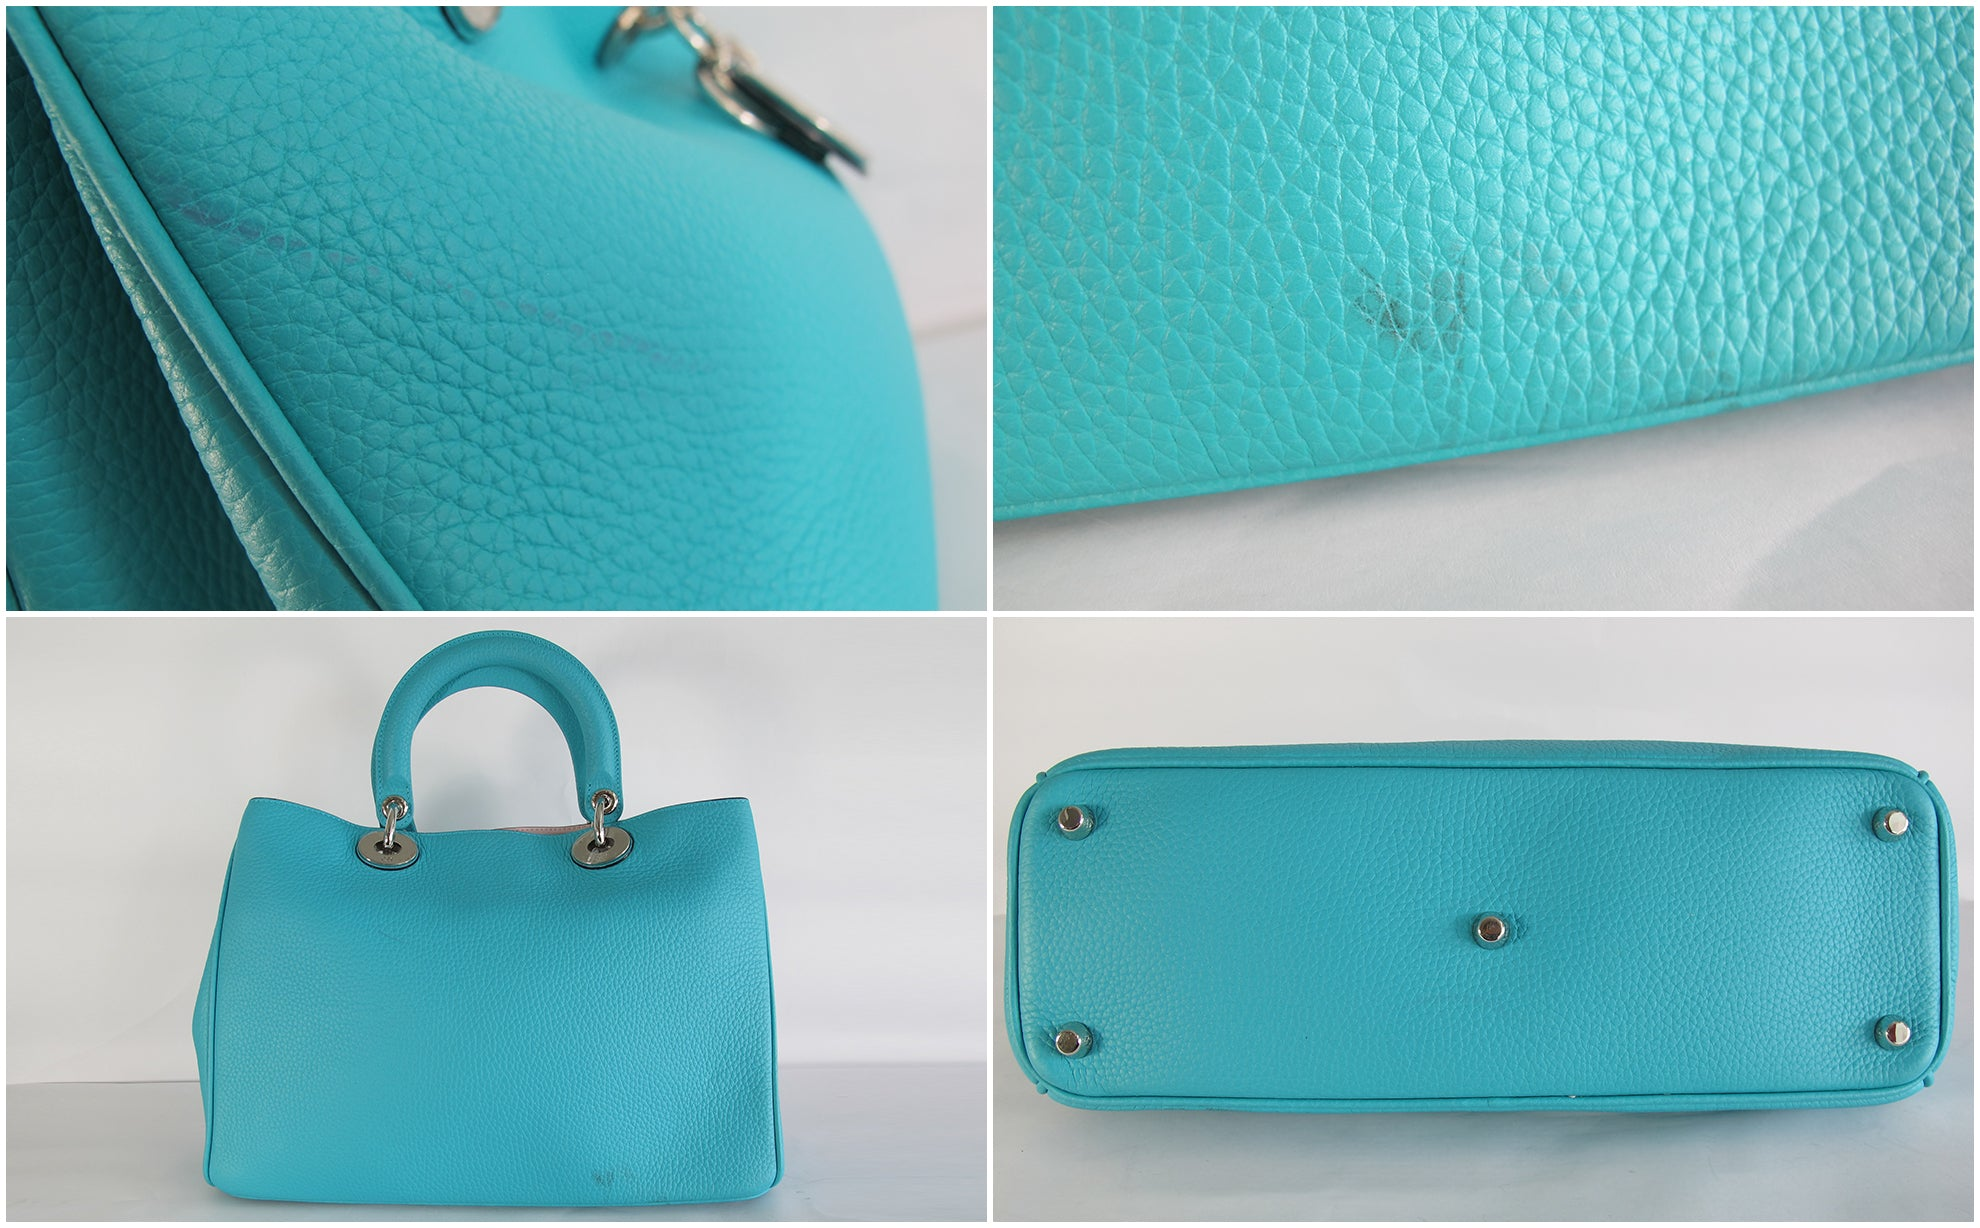 Dior Diorissimo Medium in Turquoise  (Pink Interior)